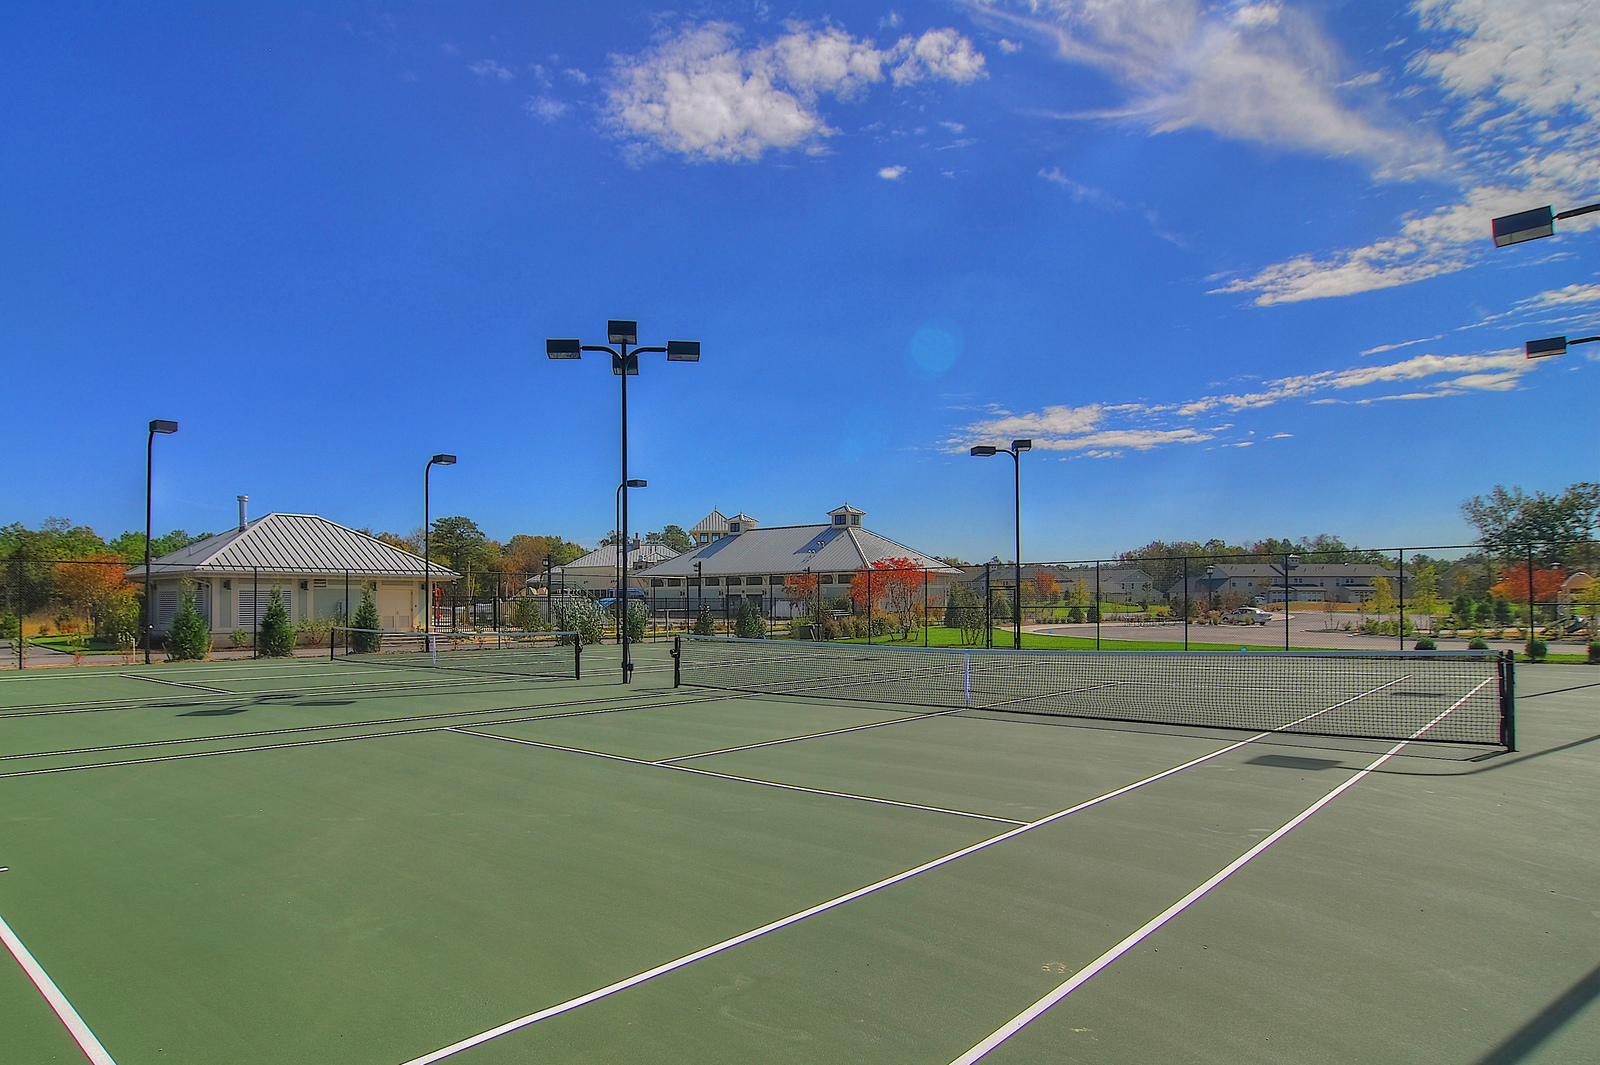 From tennis courts to bocce ball and volleyball sand pits, there is always something to do and fun to be had at Bay Forest